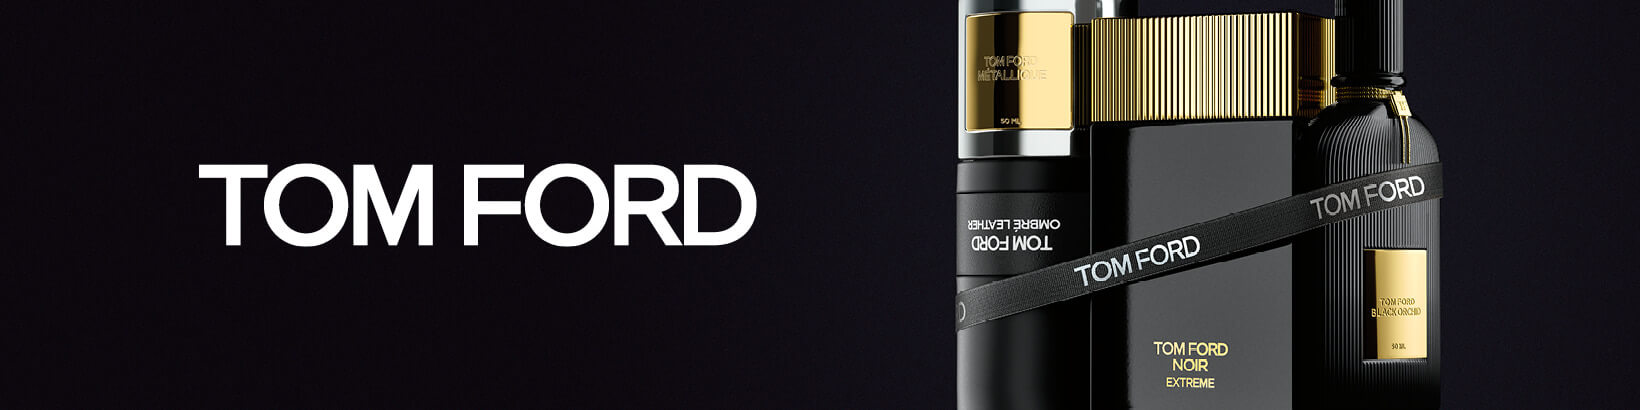 tom-ford-xmas-header